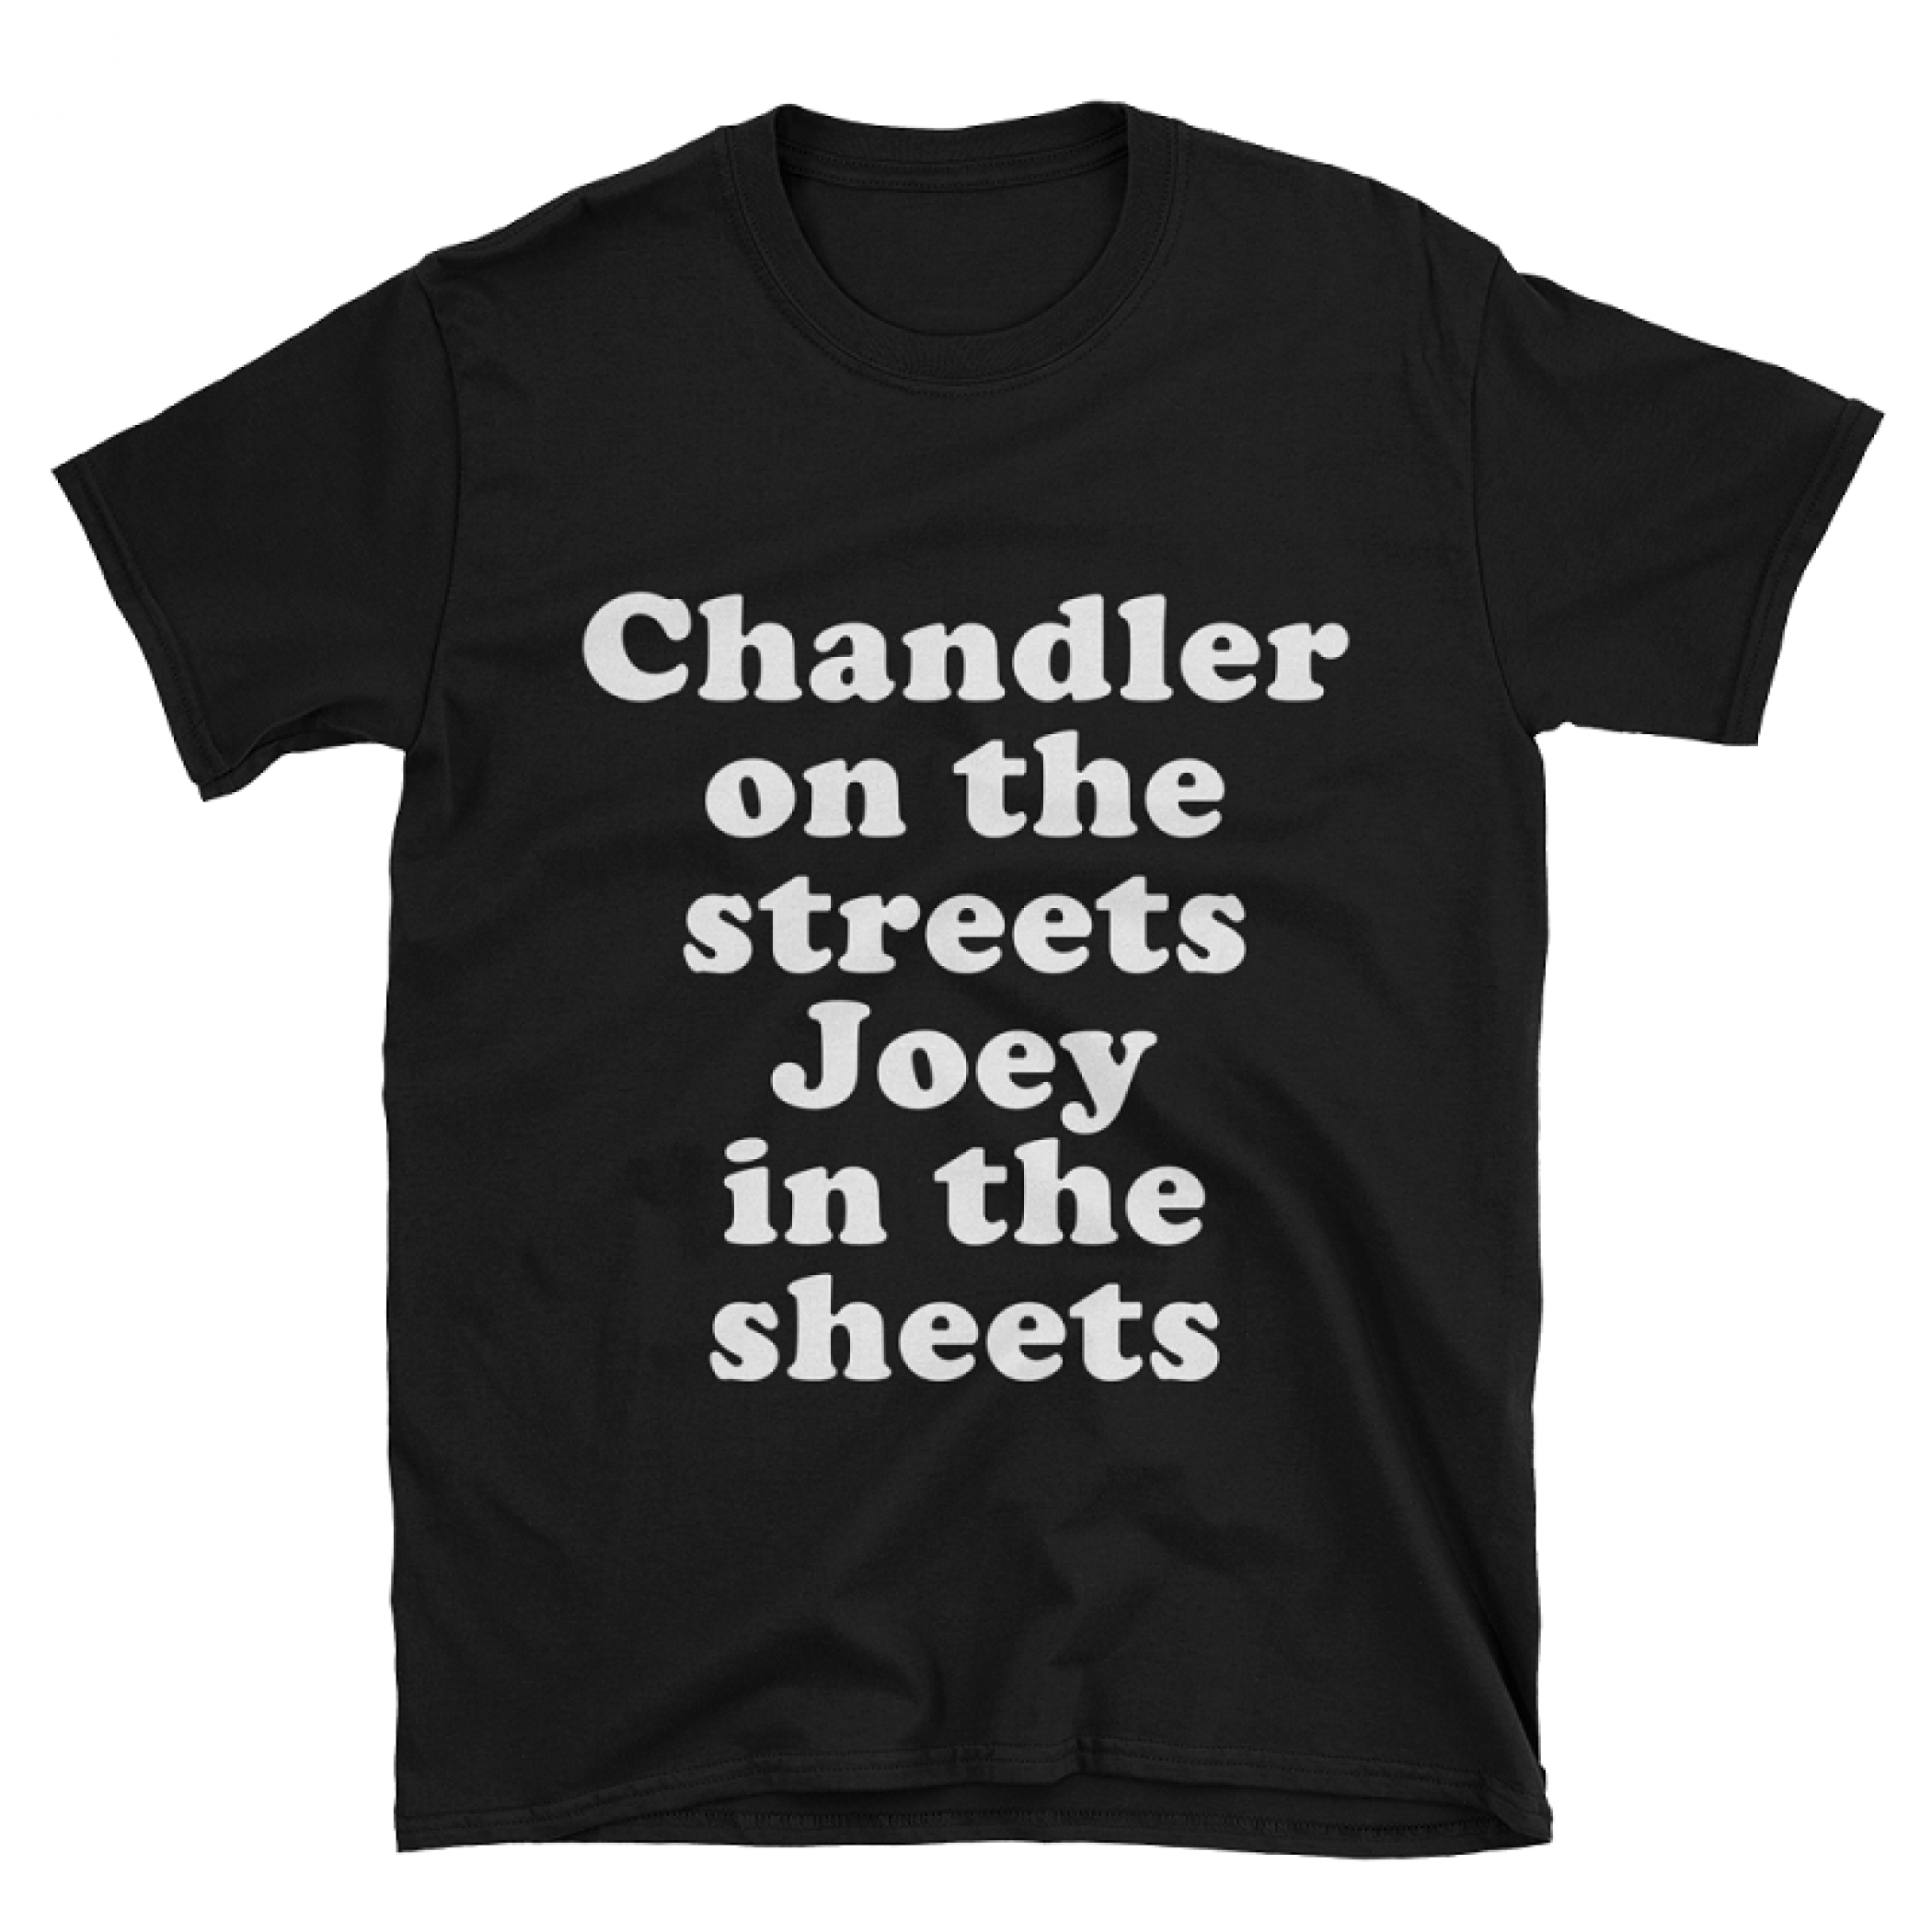 Chandler On The Streets Joey In The Sheets Men's Black T-Shirt